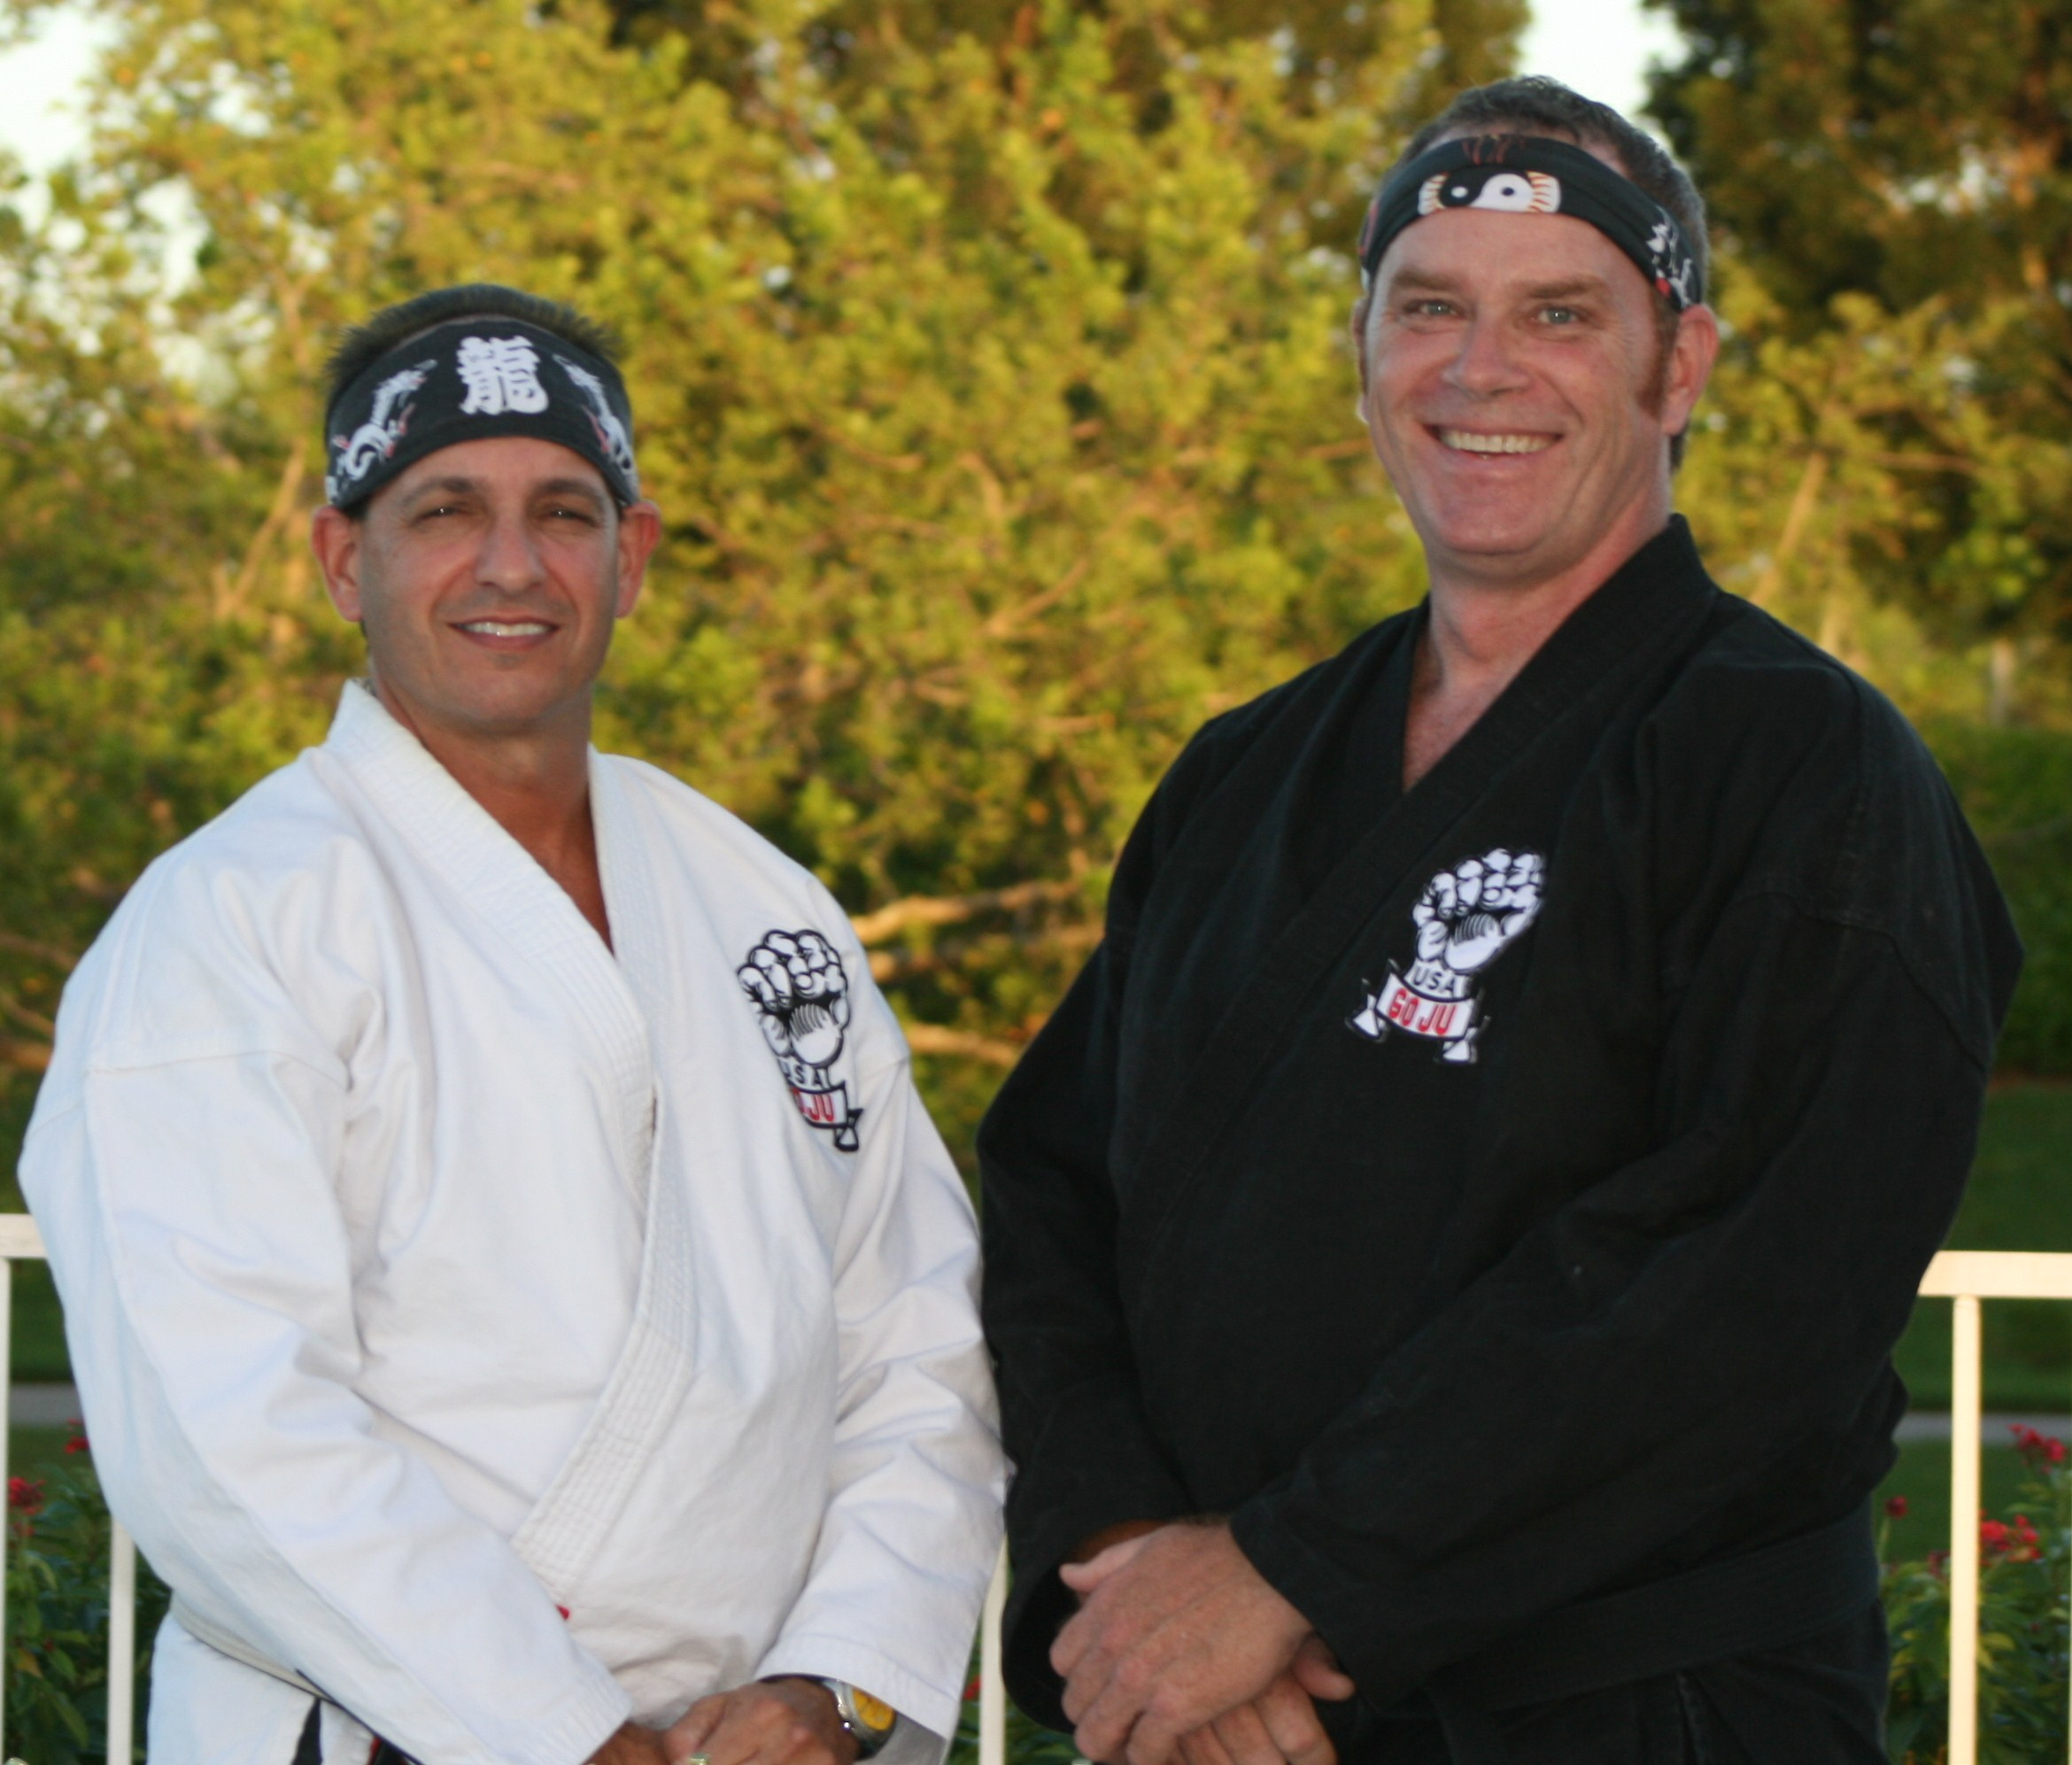 Sensei Schopp (left) and Sensei Proctor (right) teach USA Goju Karate in Weston, Florida